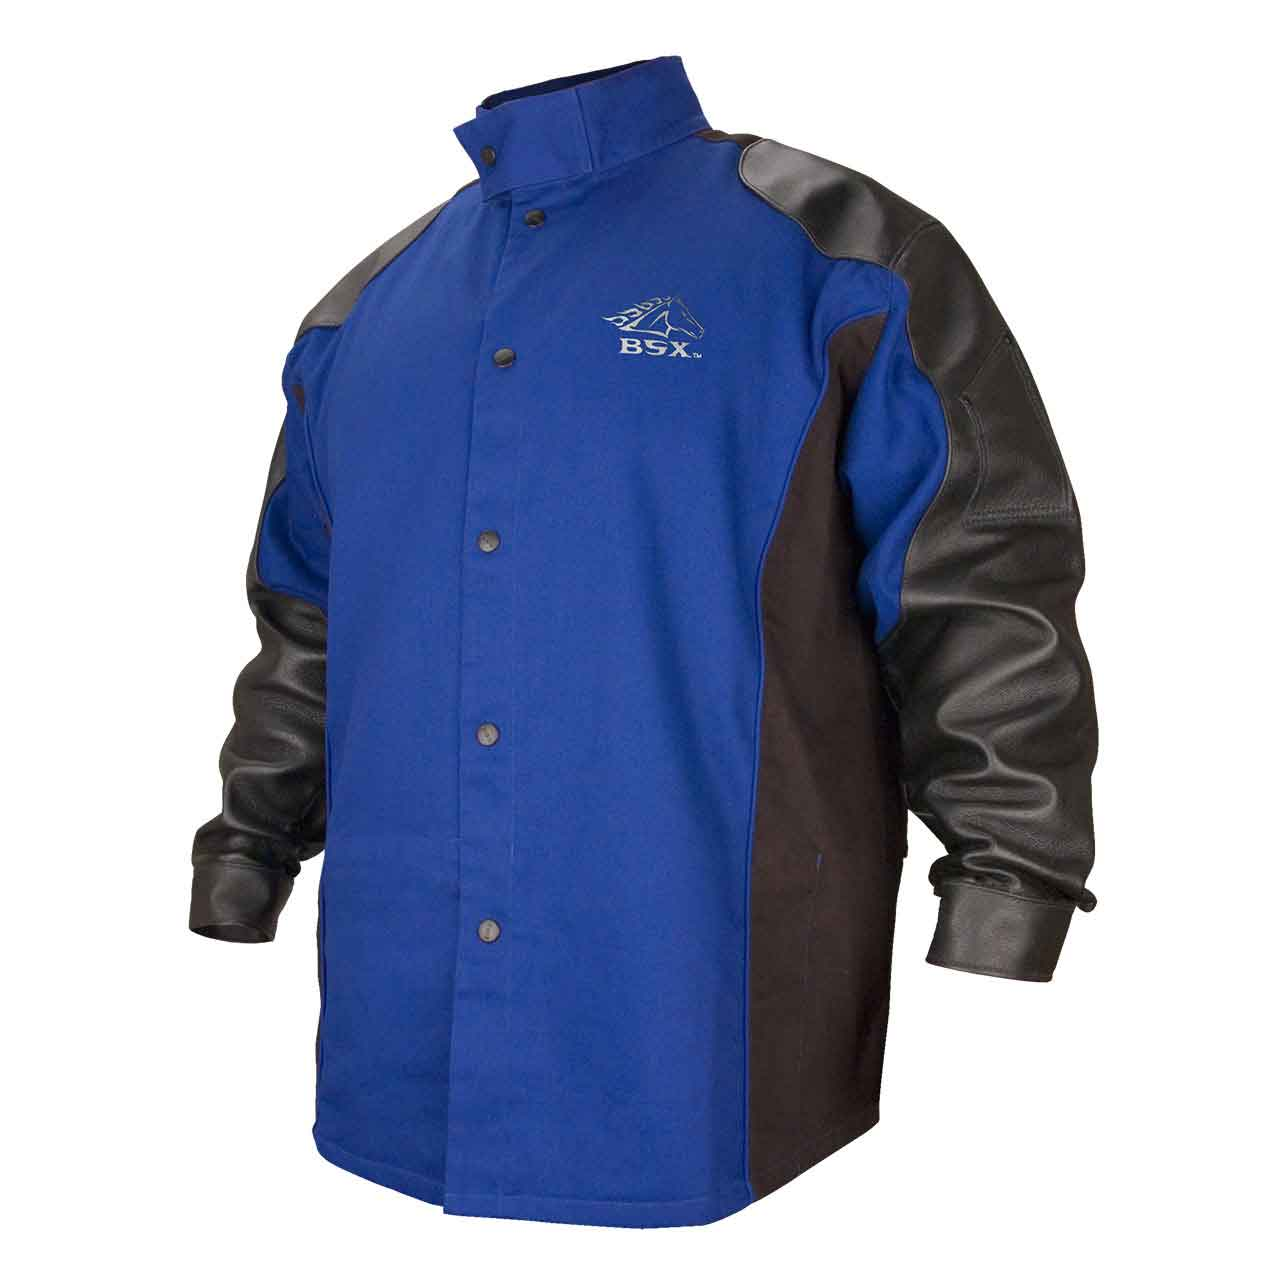 Black Stallion BXRB9C/PS BSX FR Cotton/Pigskin Welding Jacket, Blue/Black, X-LG